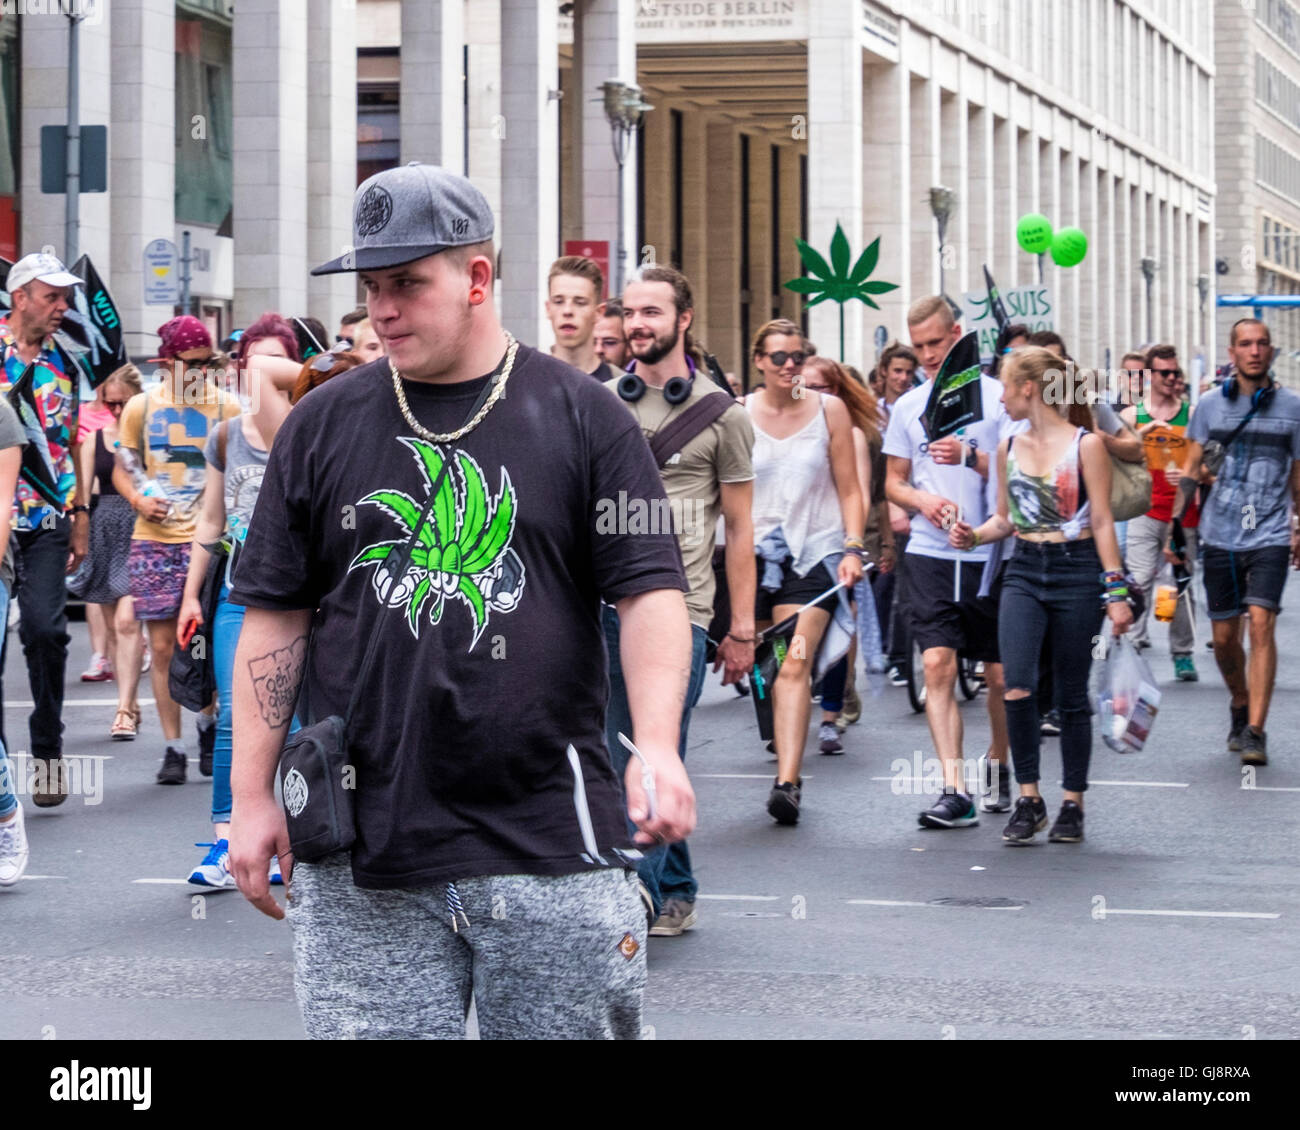 Berlin, Germany, 13th August 2016. The Hanfparade (Hemp parade) takes place annually in August. Demonstrators gathered Stock Photo